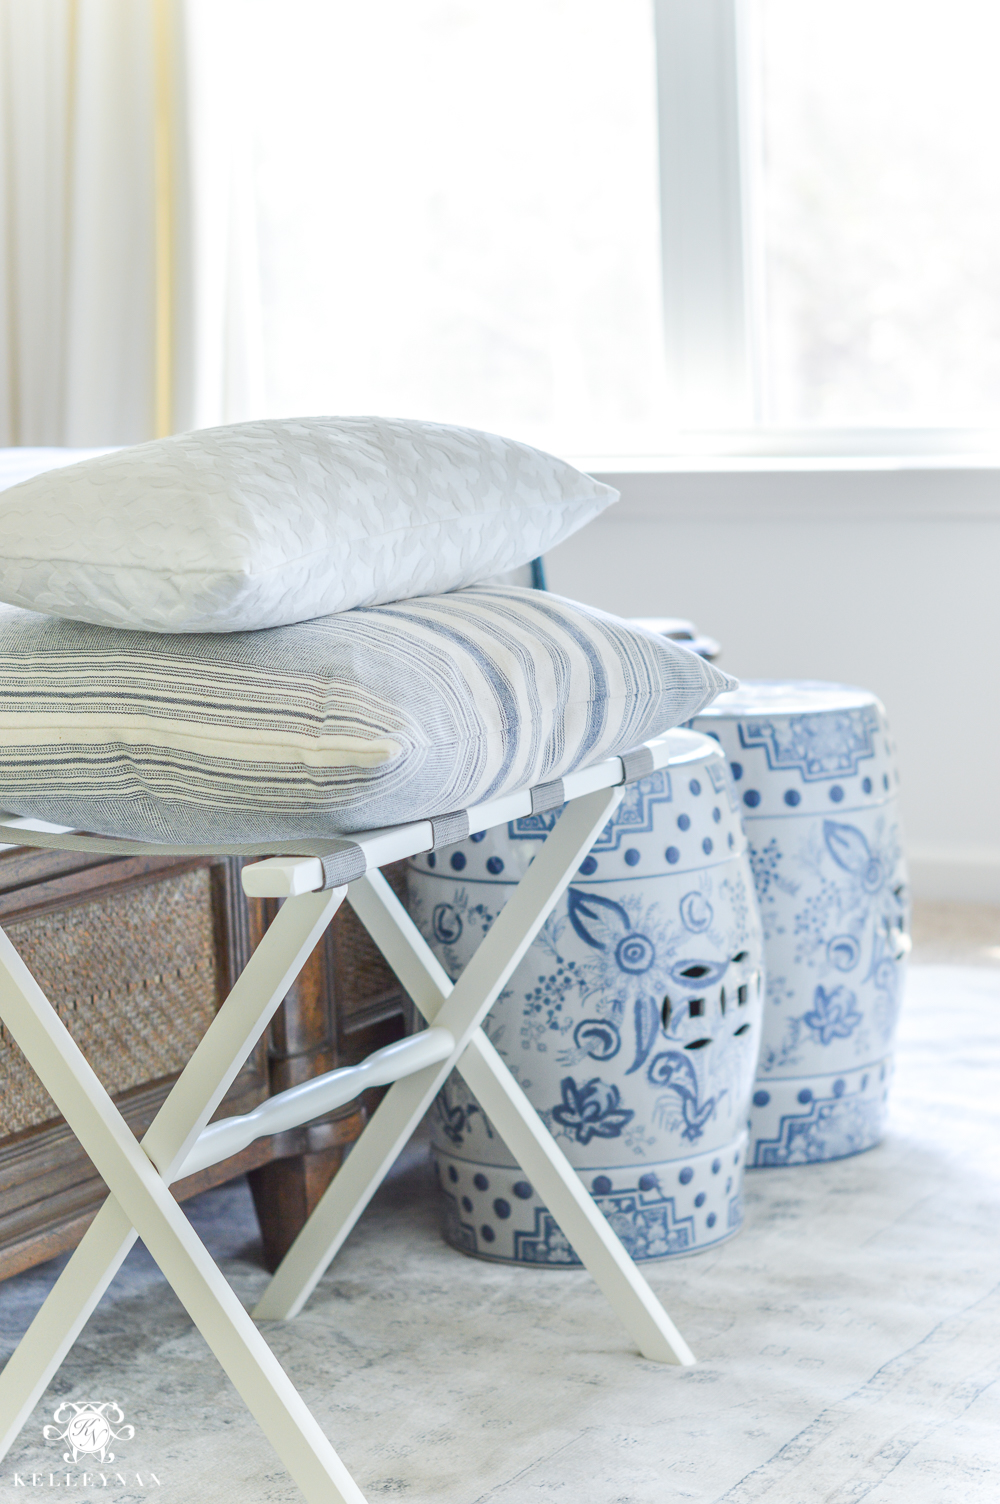 Image of: 8 Guest Bedroom Essentials And Luxuries Your Company Will Thank You For Kelley Nan